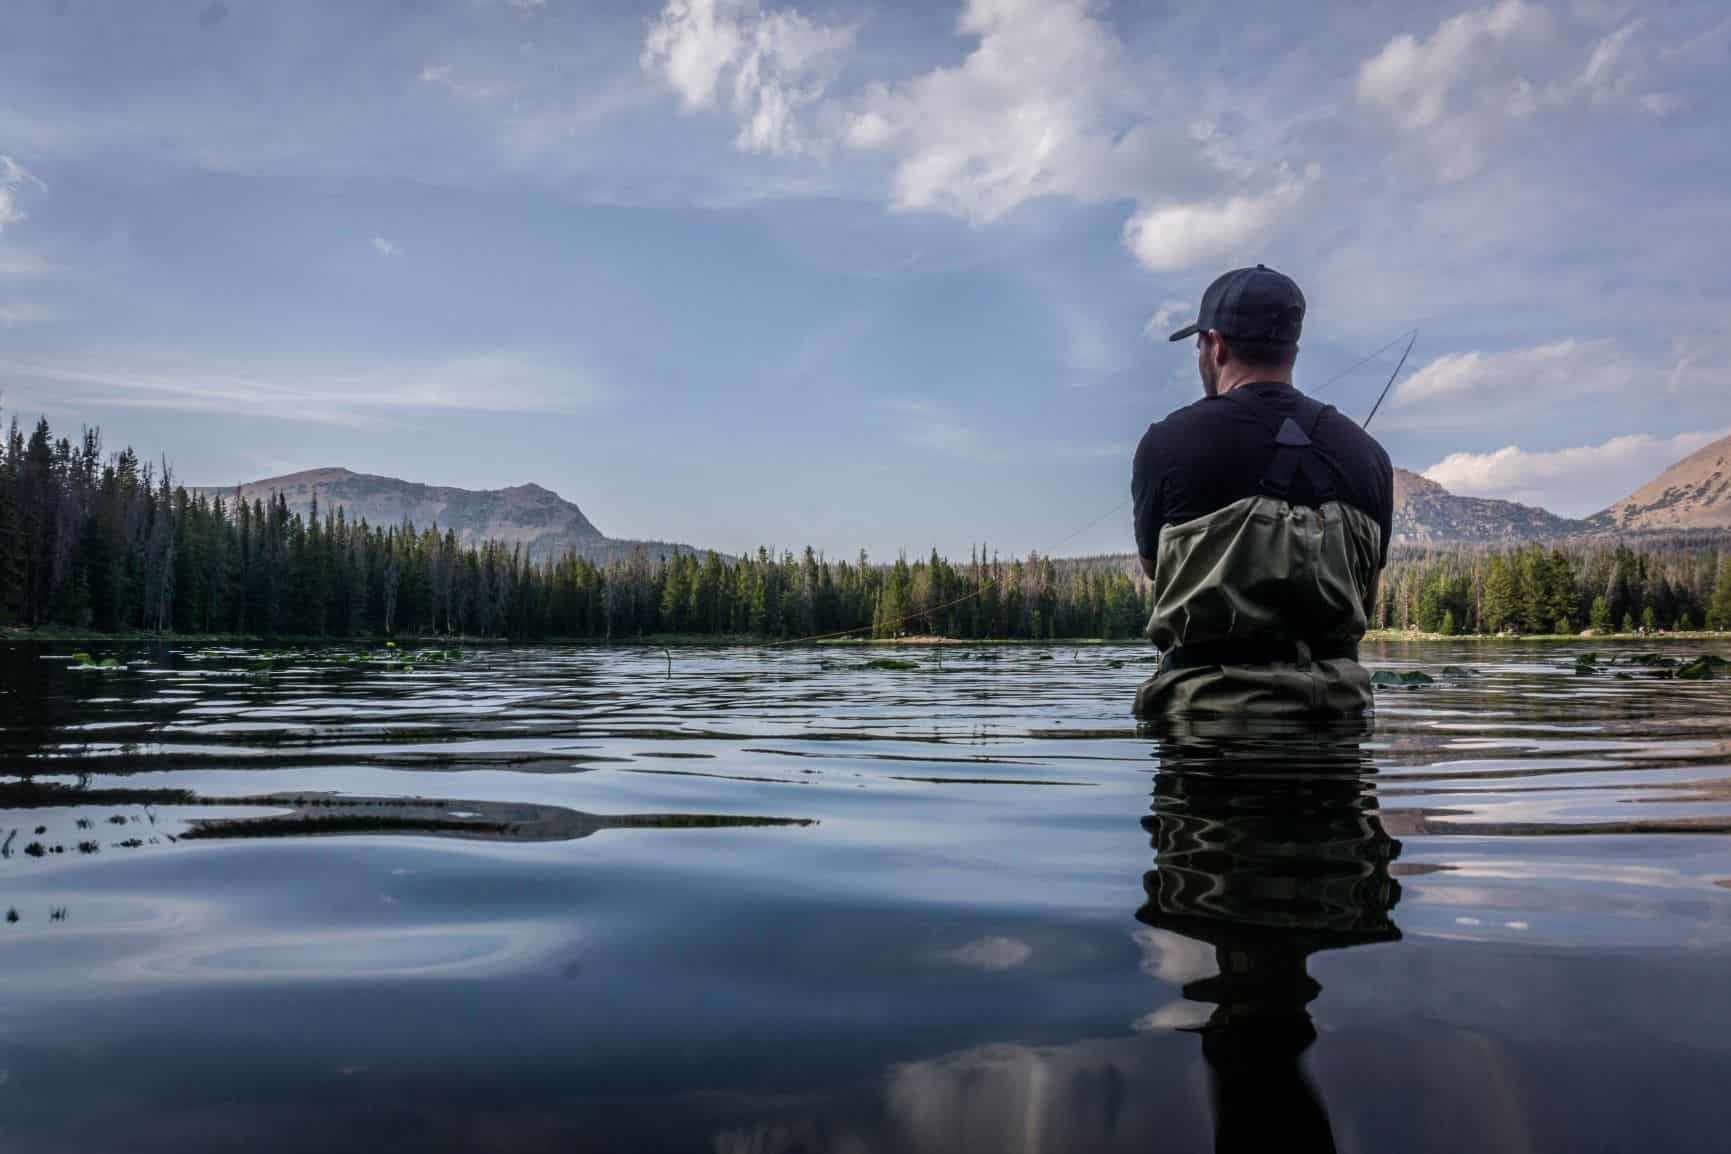 Best fly fishing waders in action